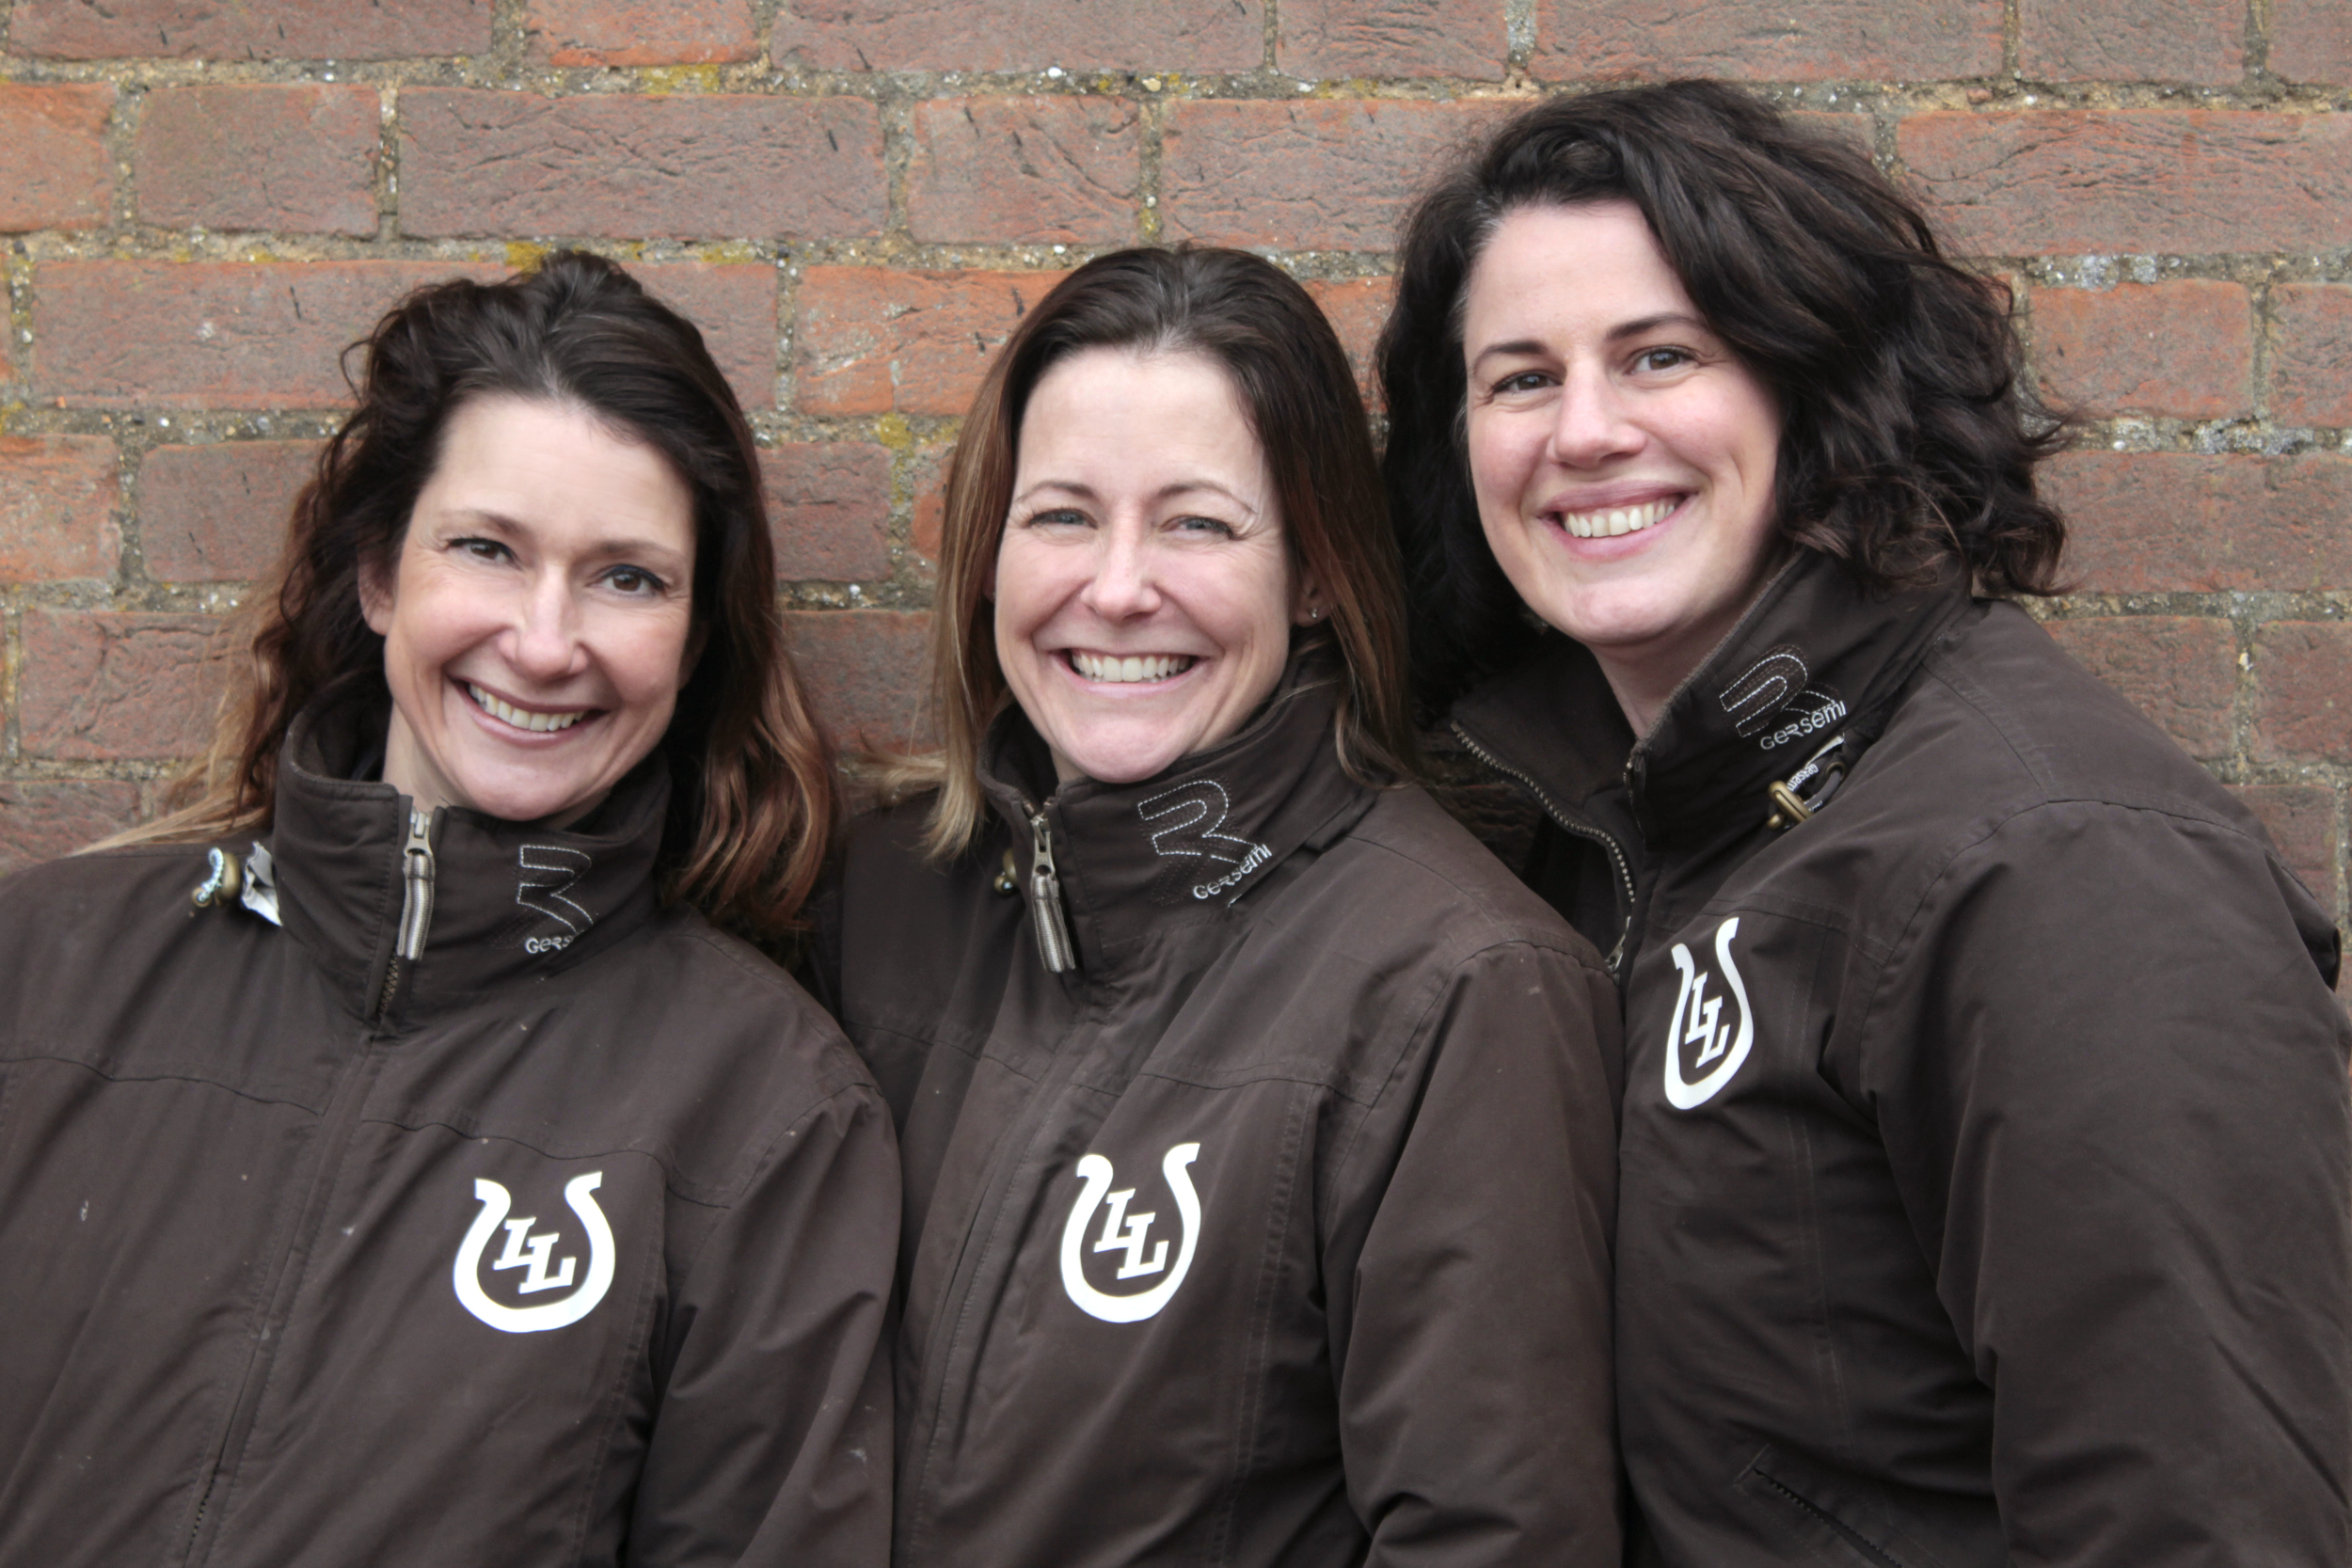 The Learning to Listen - South and Autism Angels - South Team.  From left to right, Jo Richardson, Jo Osborn and Rebecca Kelly